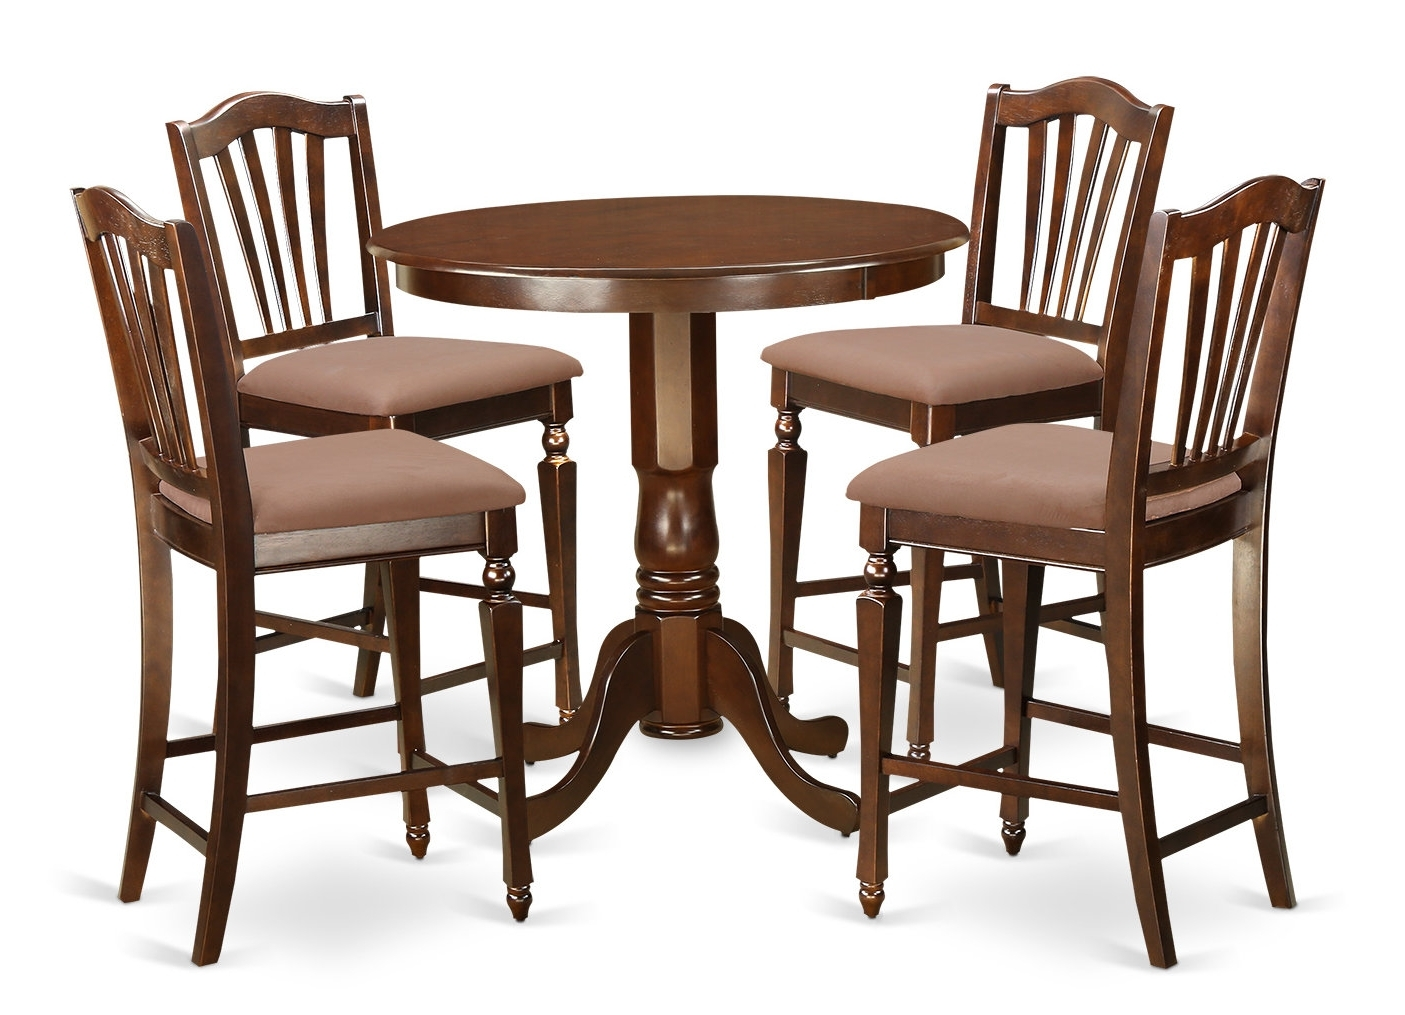 Wayfair Regarding Jaxon 5 Piece Round Dining Sets With Upholstered Chairs (View 17 of 25)